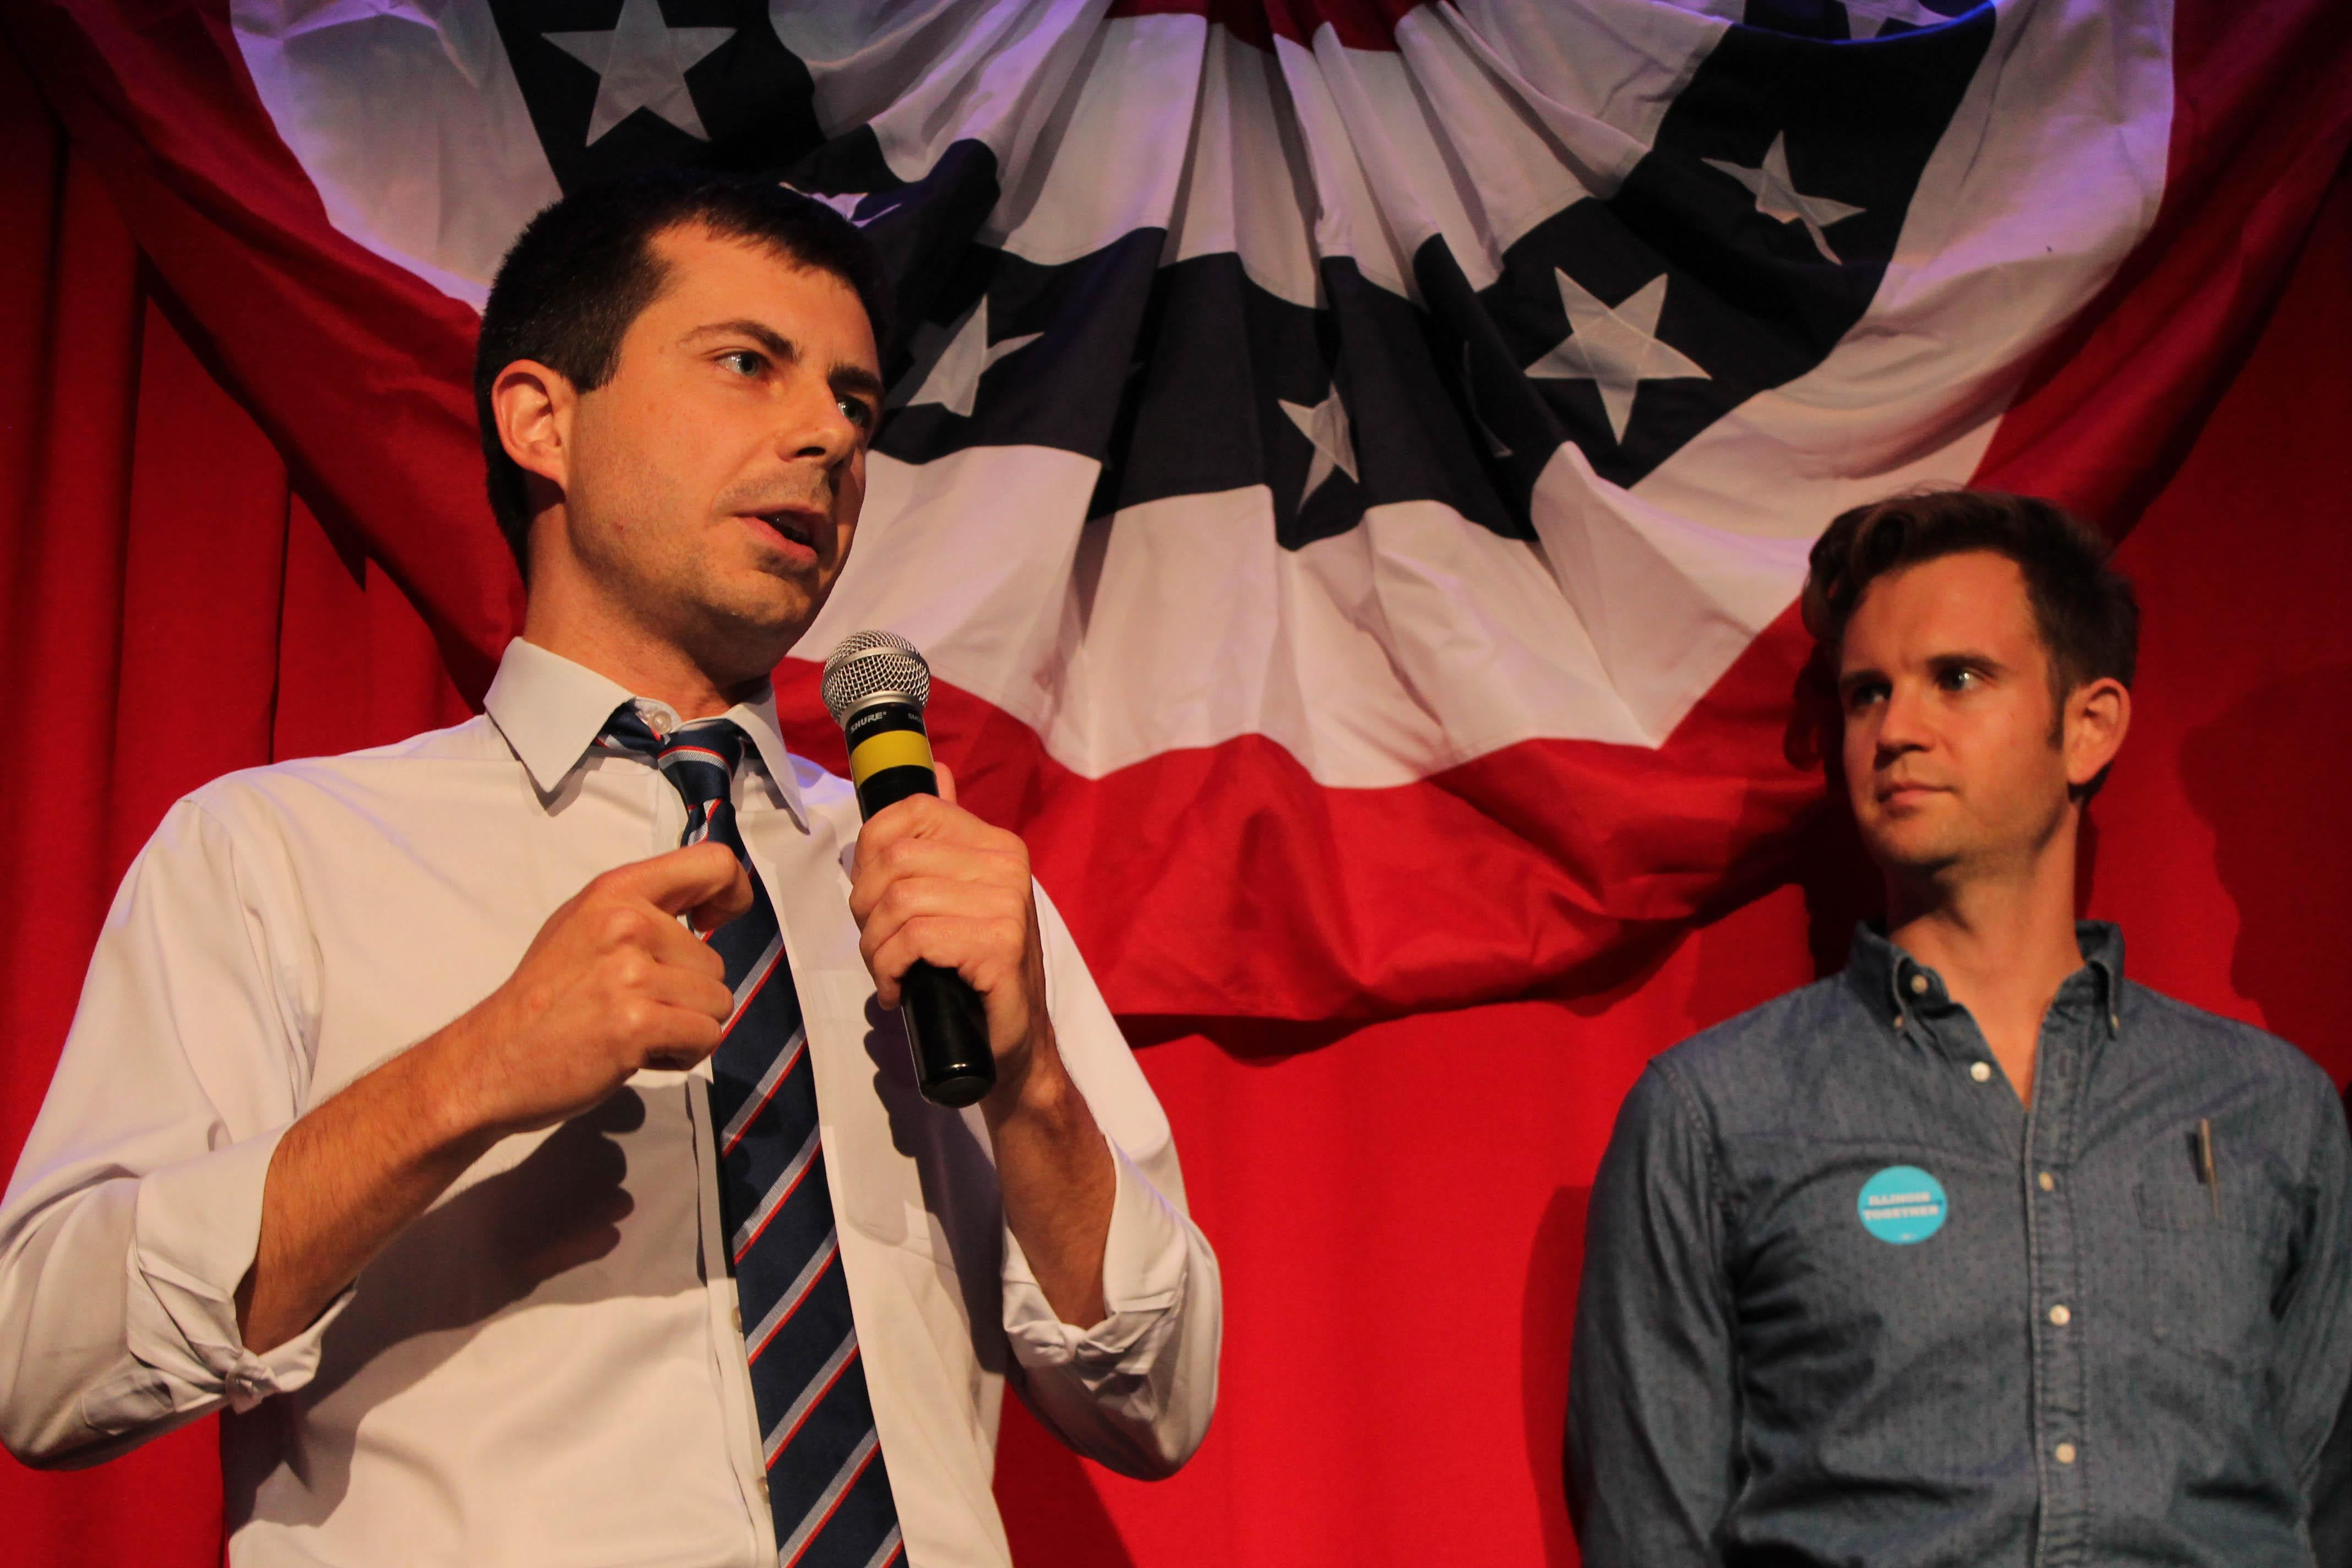 Standing in front of a patriotic-looking background, Buttigieg speaks into a microphone.